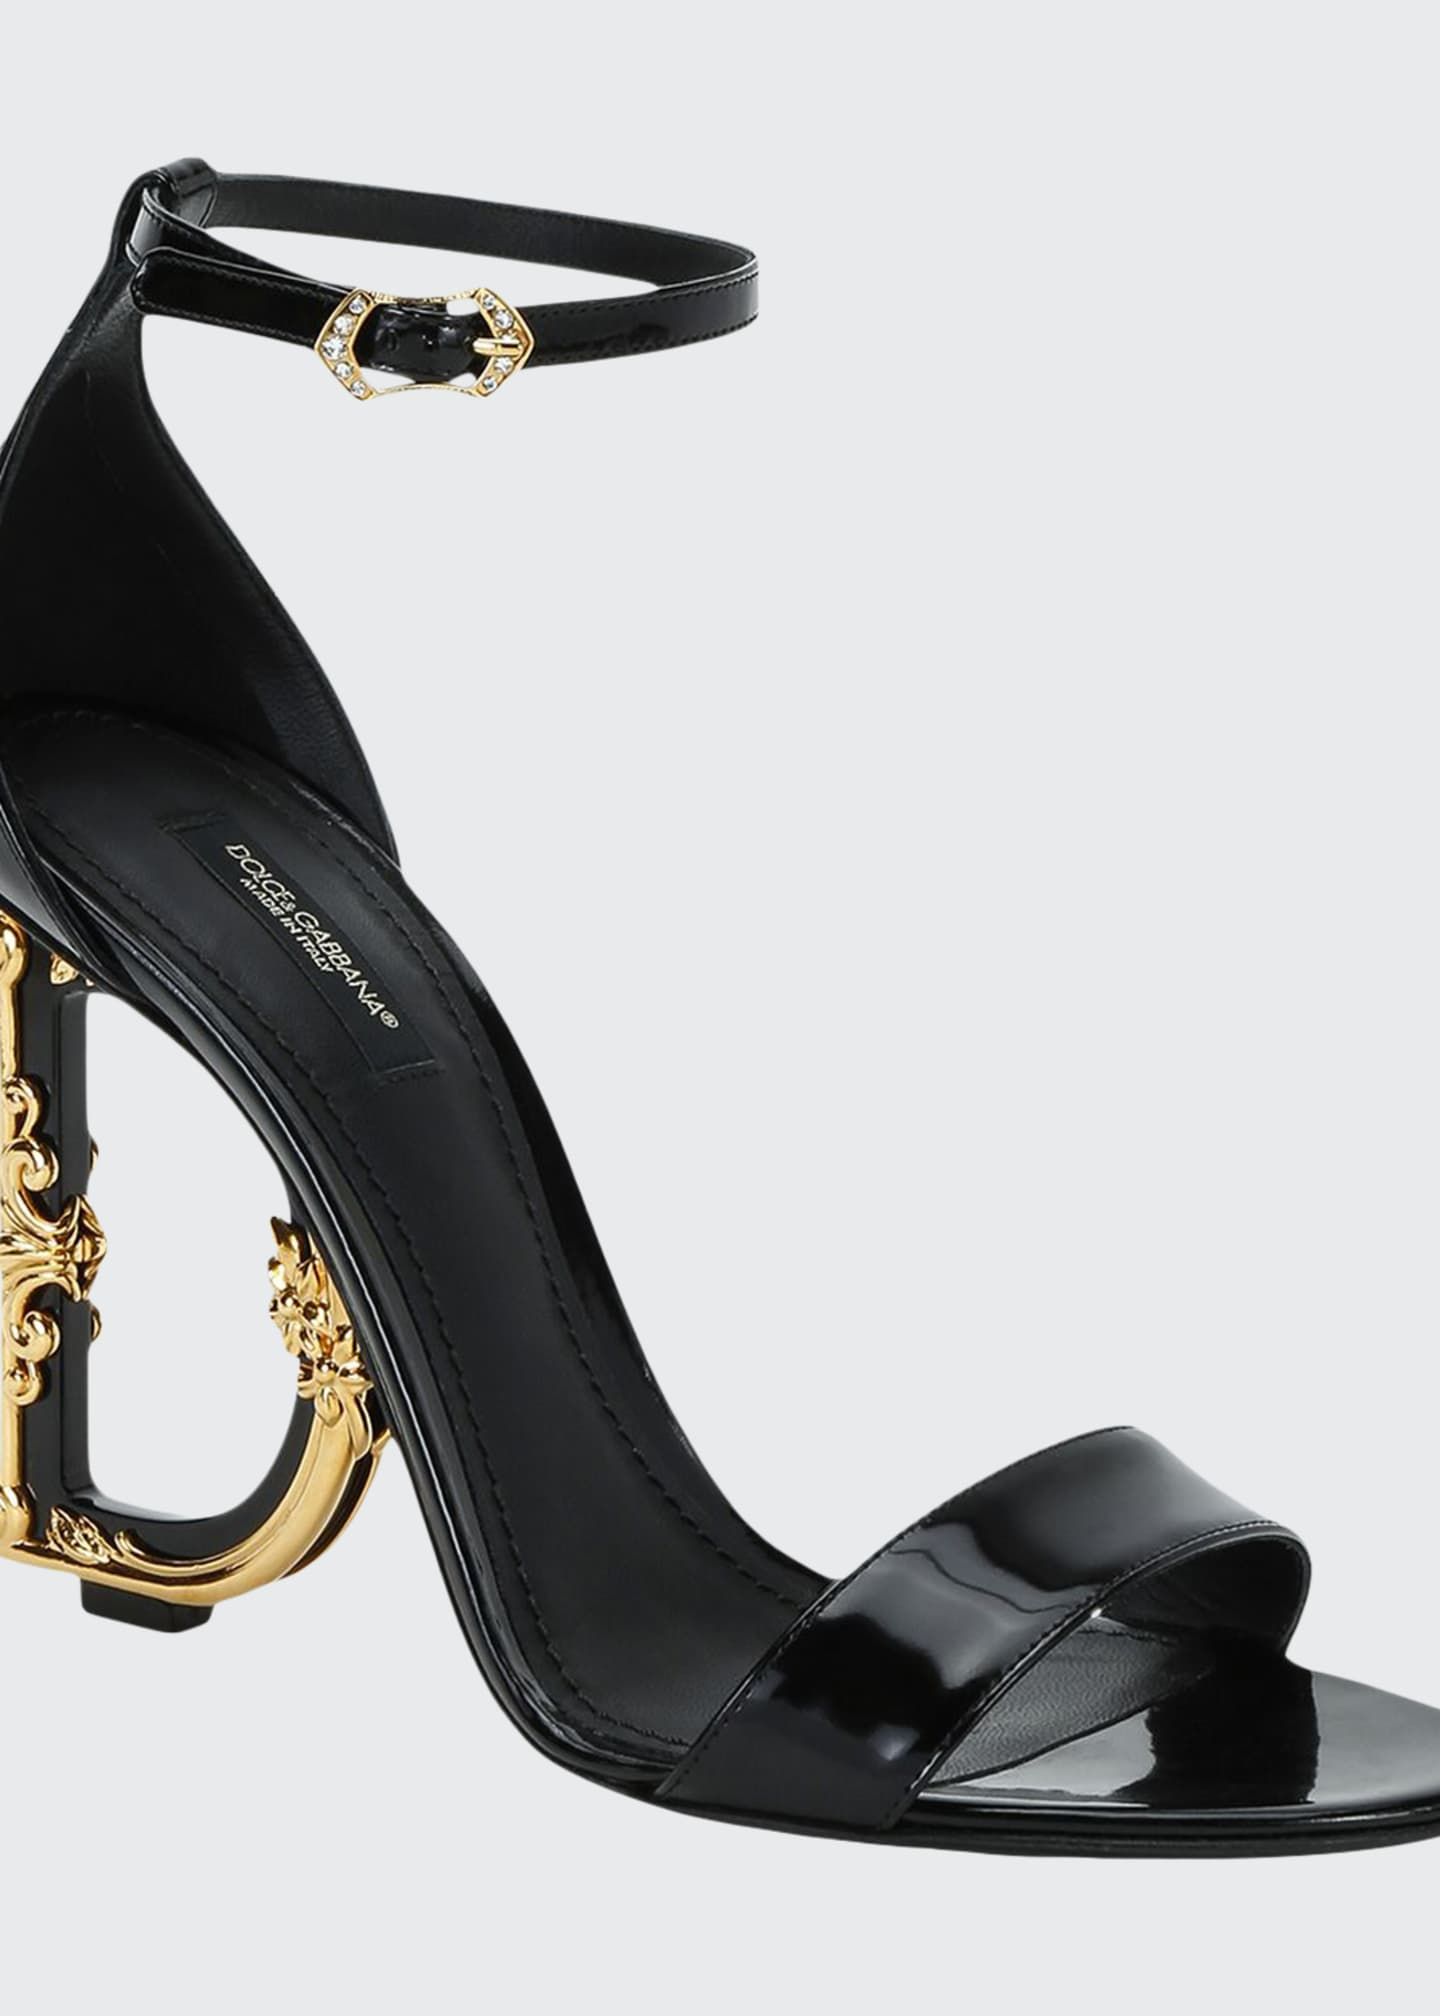 Dolce & Gabbana Patent Leather Sandals with Logo